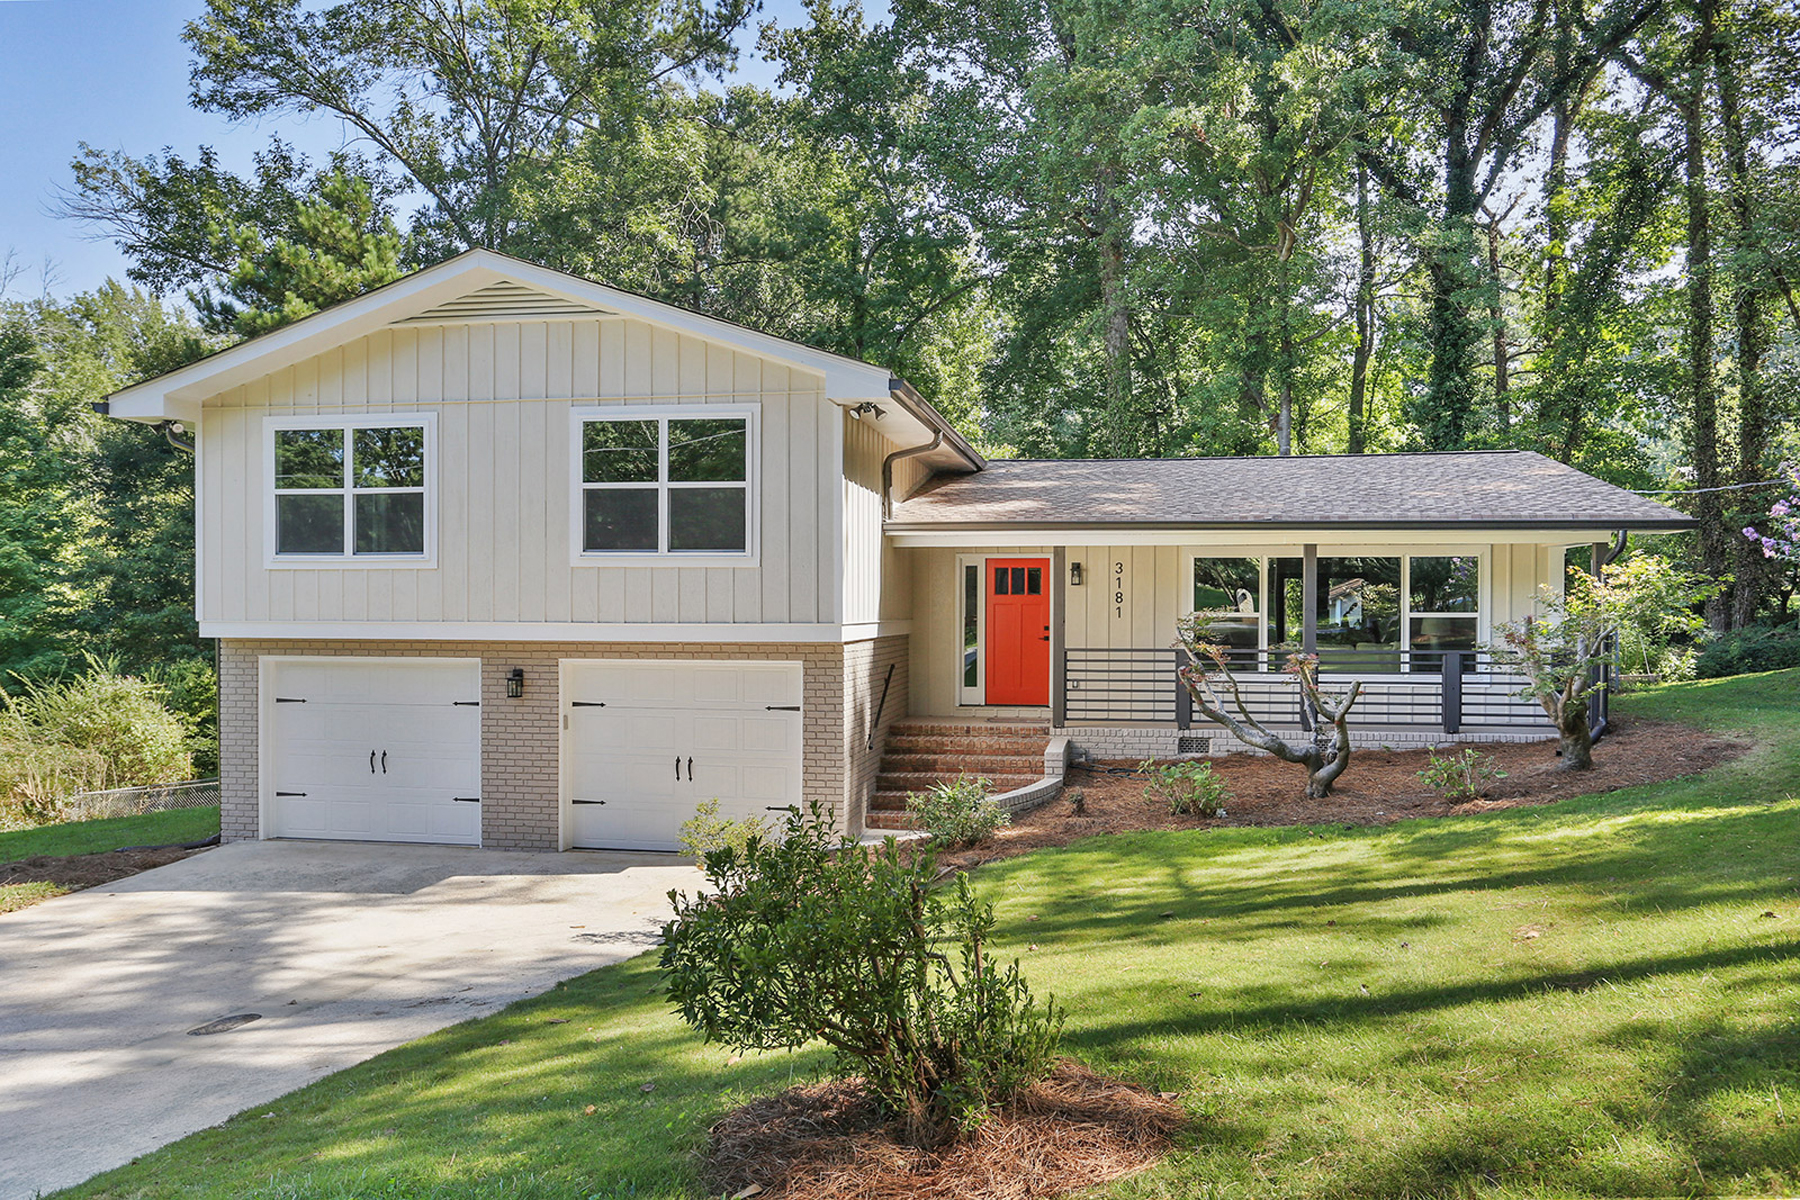 Single Family Homes for Active at Beautifully Renovated Contemporary Located on the Best Cul-de-sac in Chamblee 3181 Barkside Court Chamblee, Georgia 30341 United States